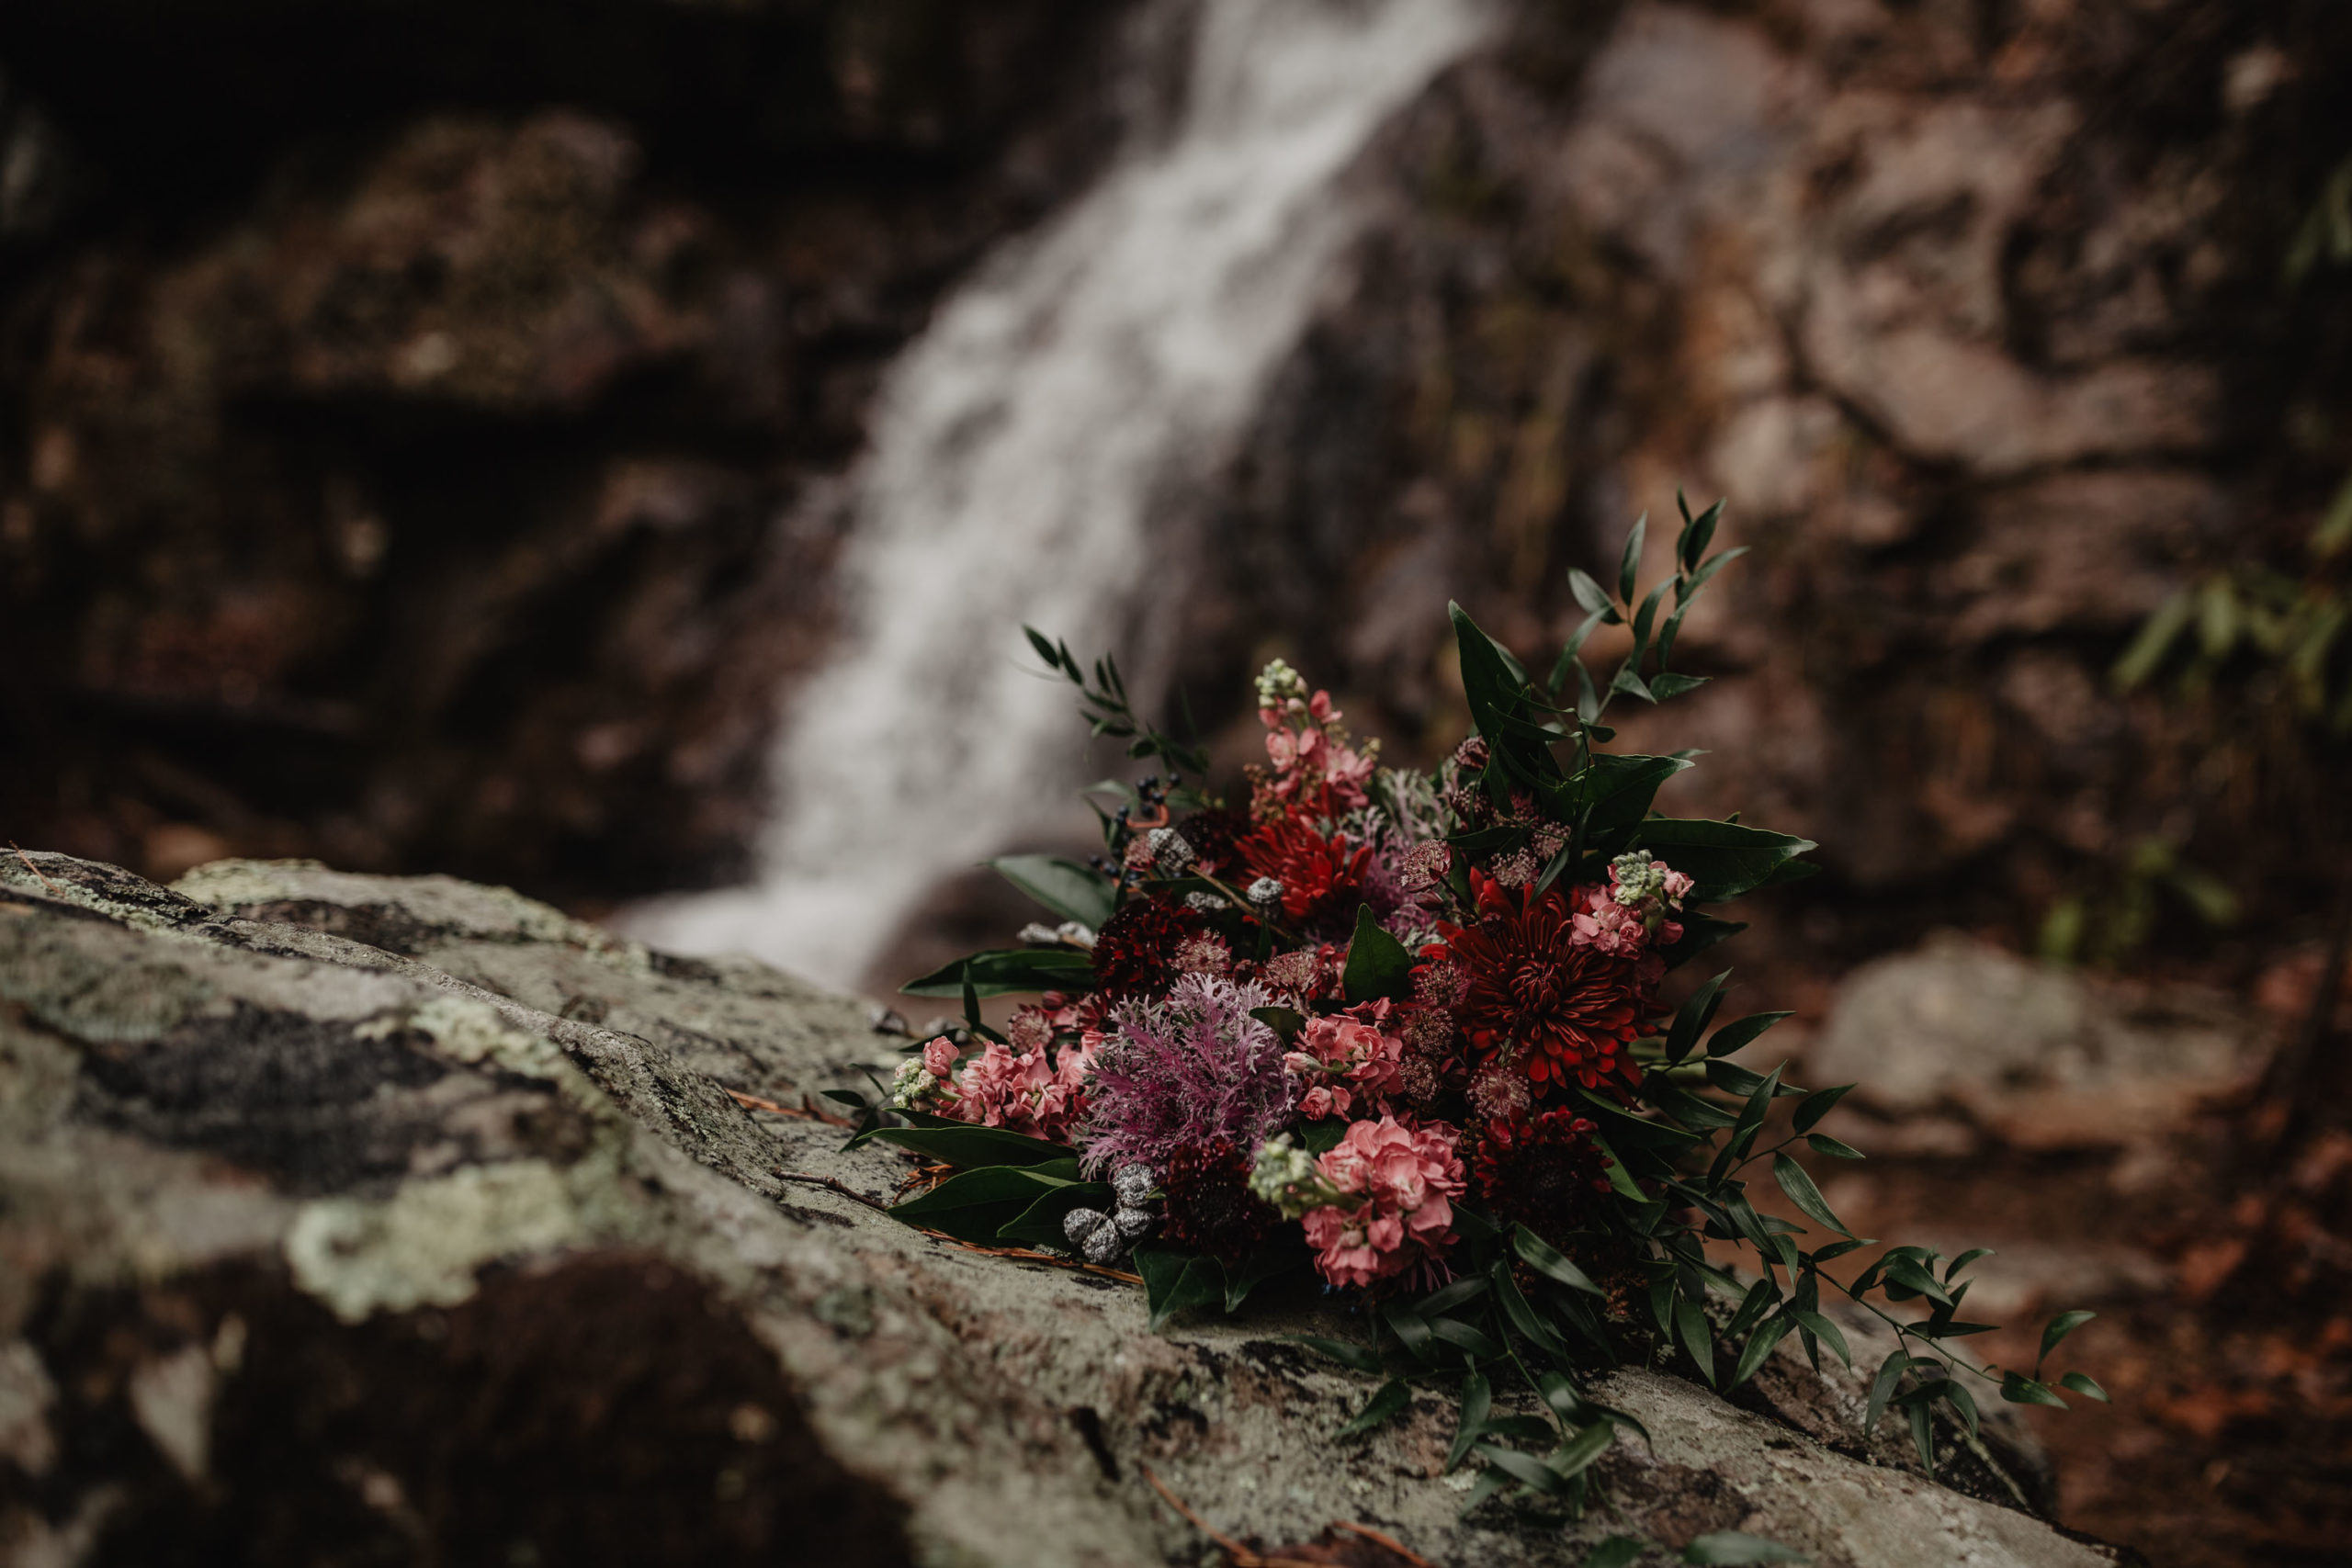 Adventure Elopement Photographer, Officiant, and Planner Packages